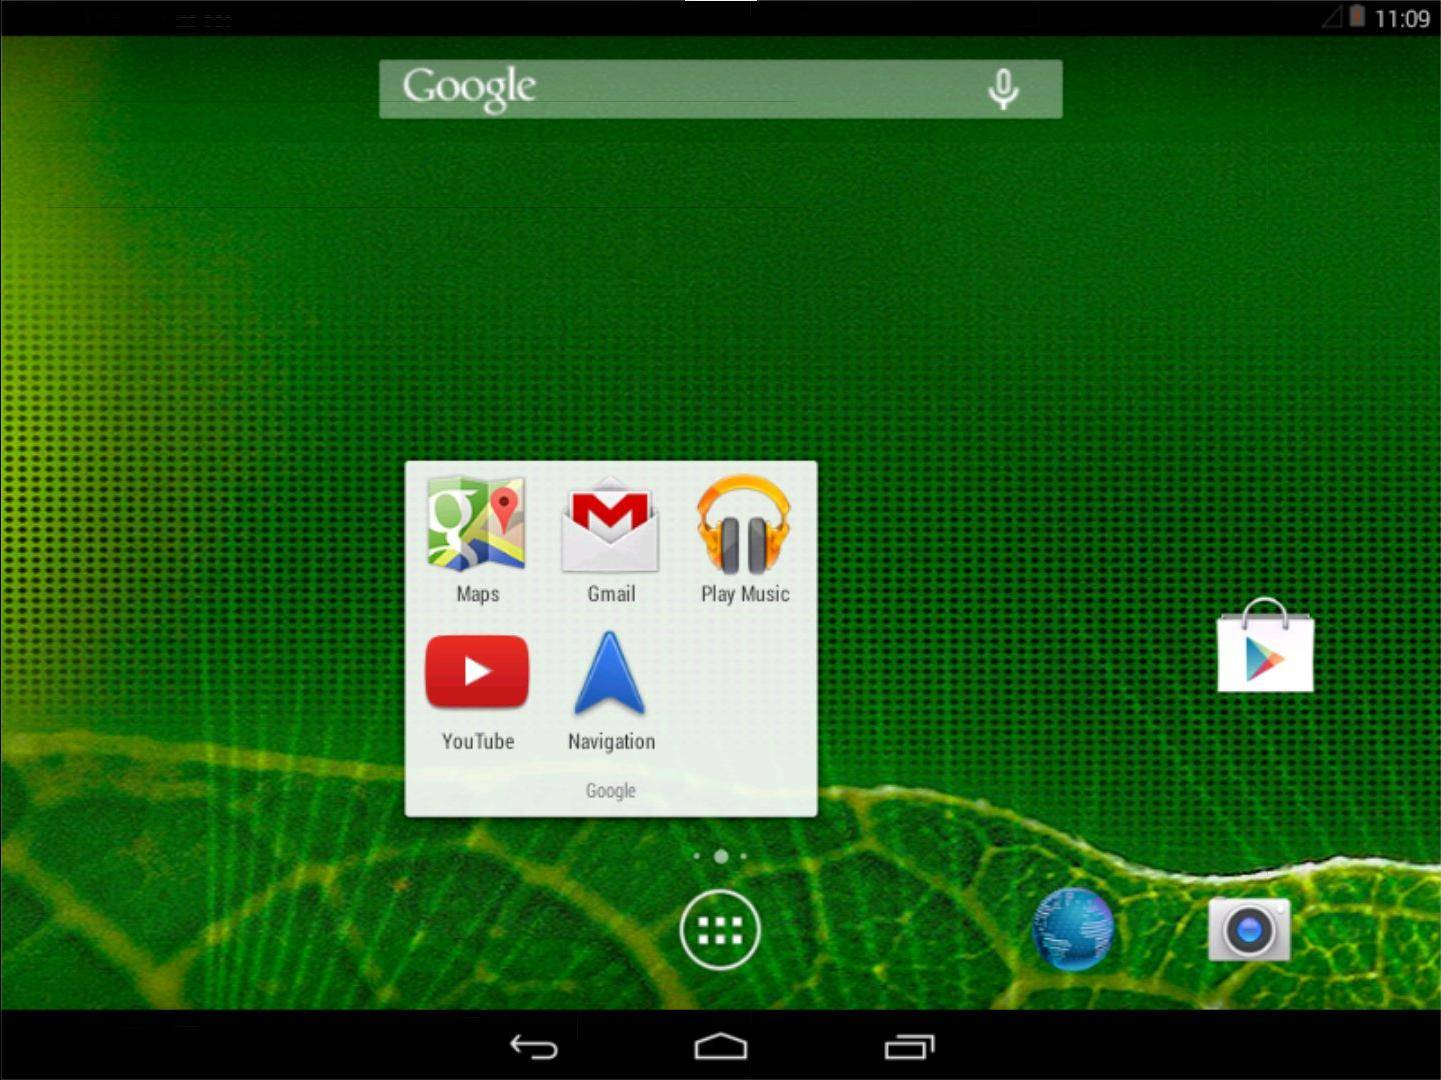 Android-x86 announces 4 4 release candidate - Android Community